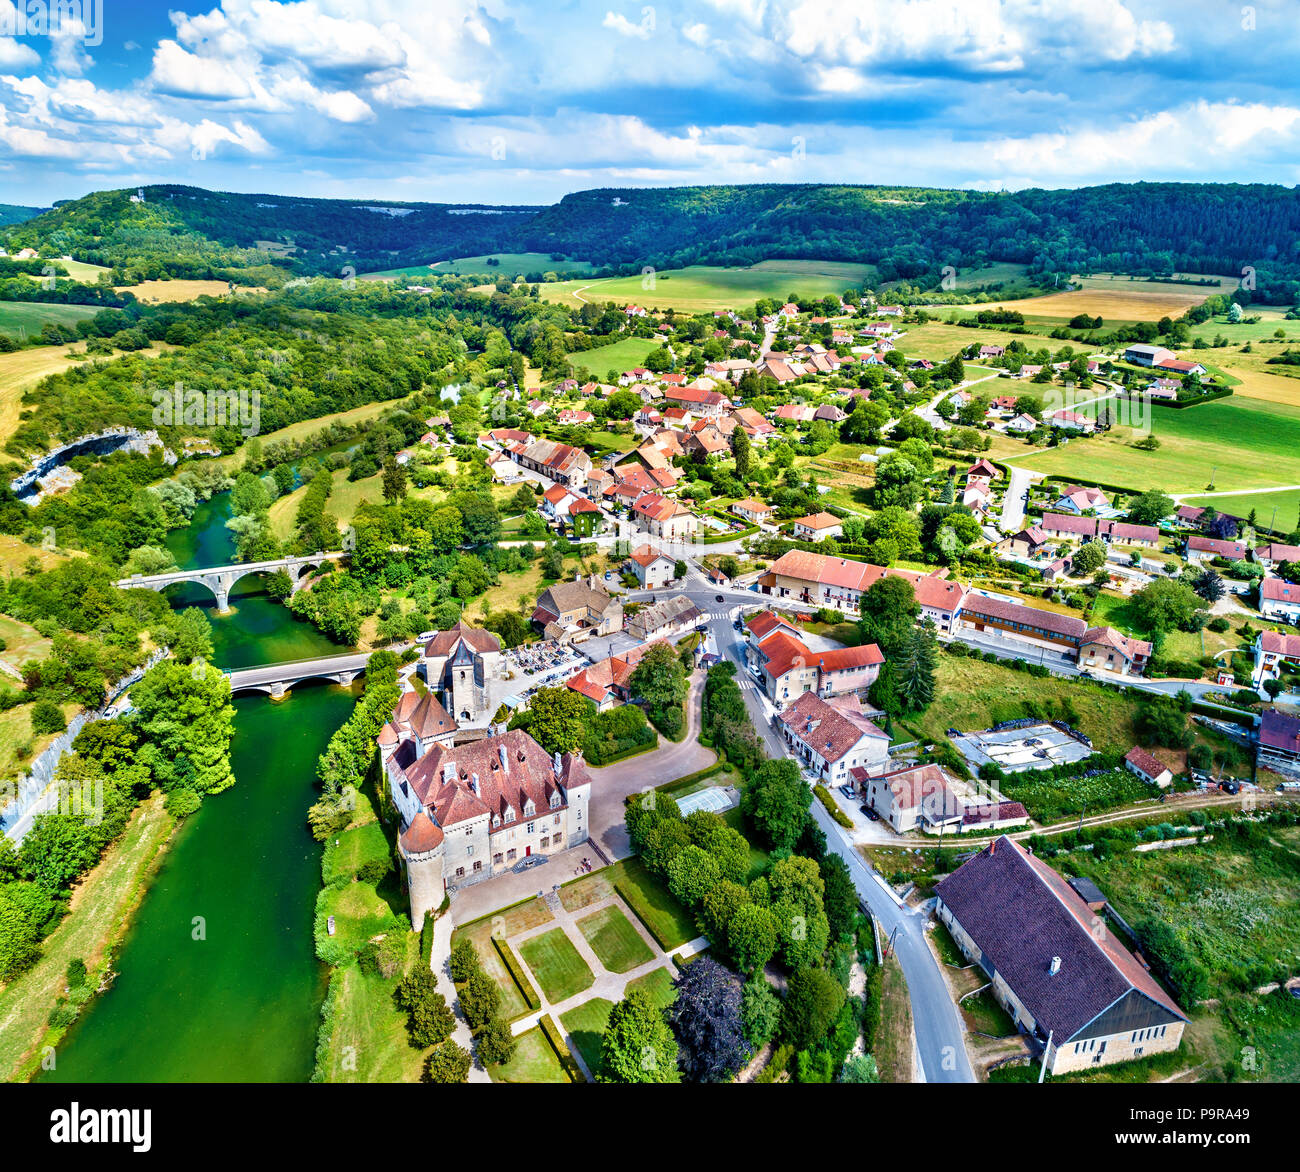 Aerial view of the Chateau de Cleron, a castle in the Doubs department of France - Stock Image